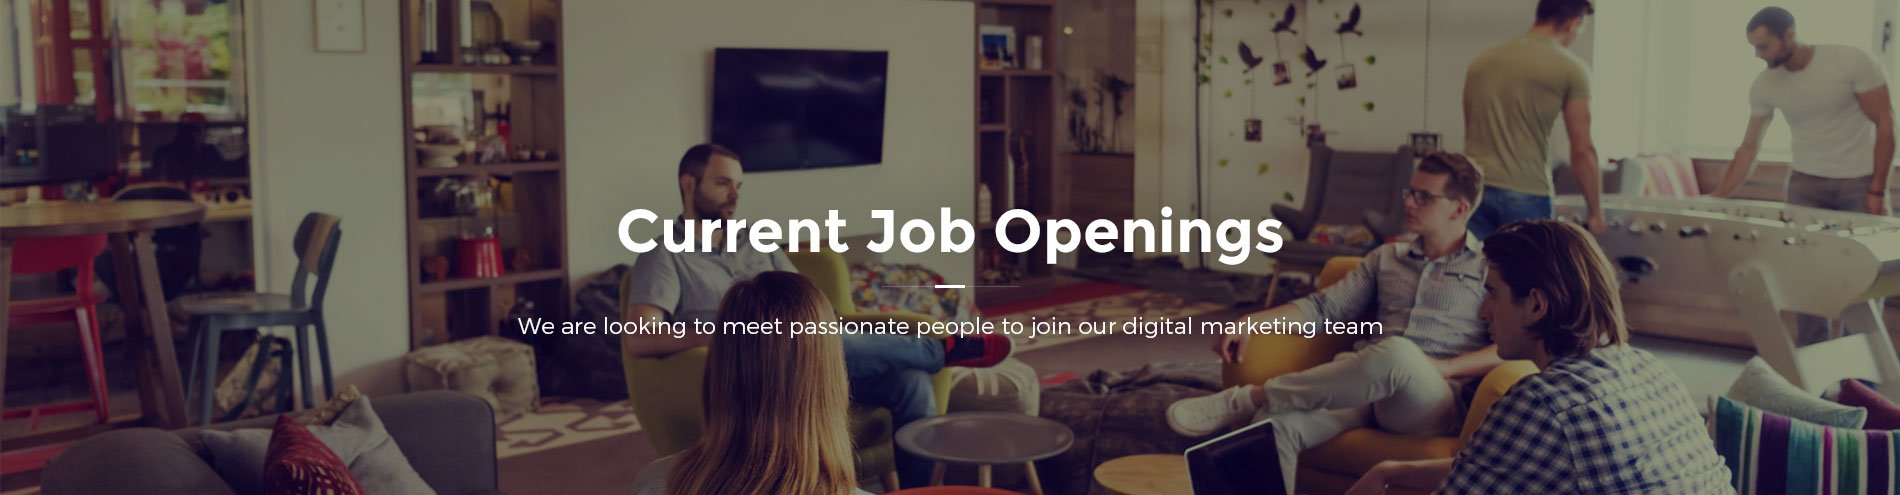 Digital Marketing Job Openings at Digital Success